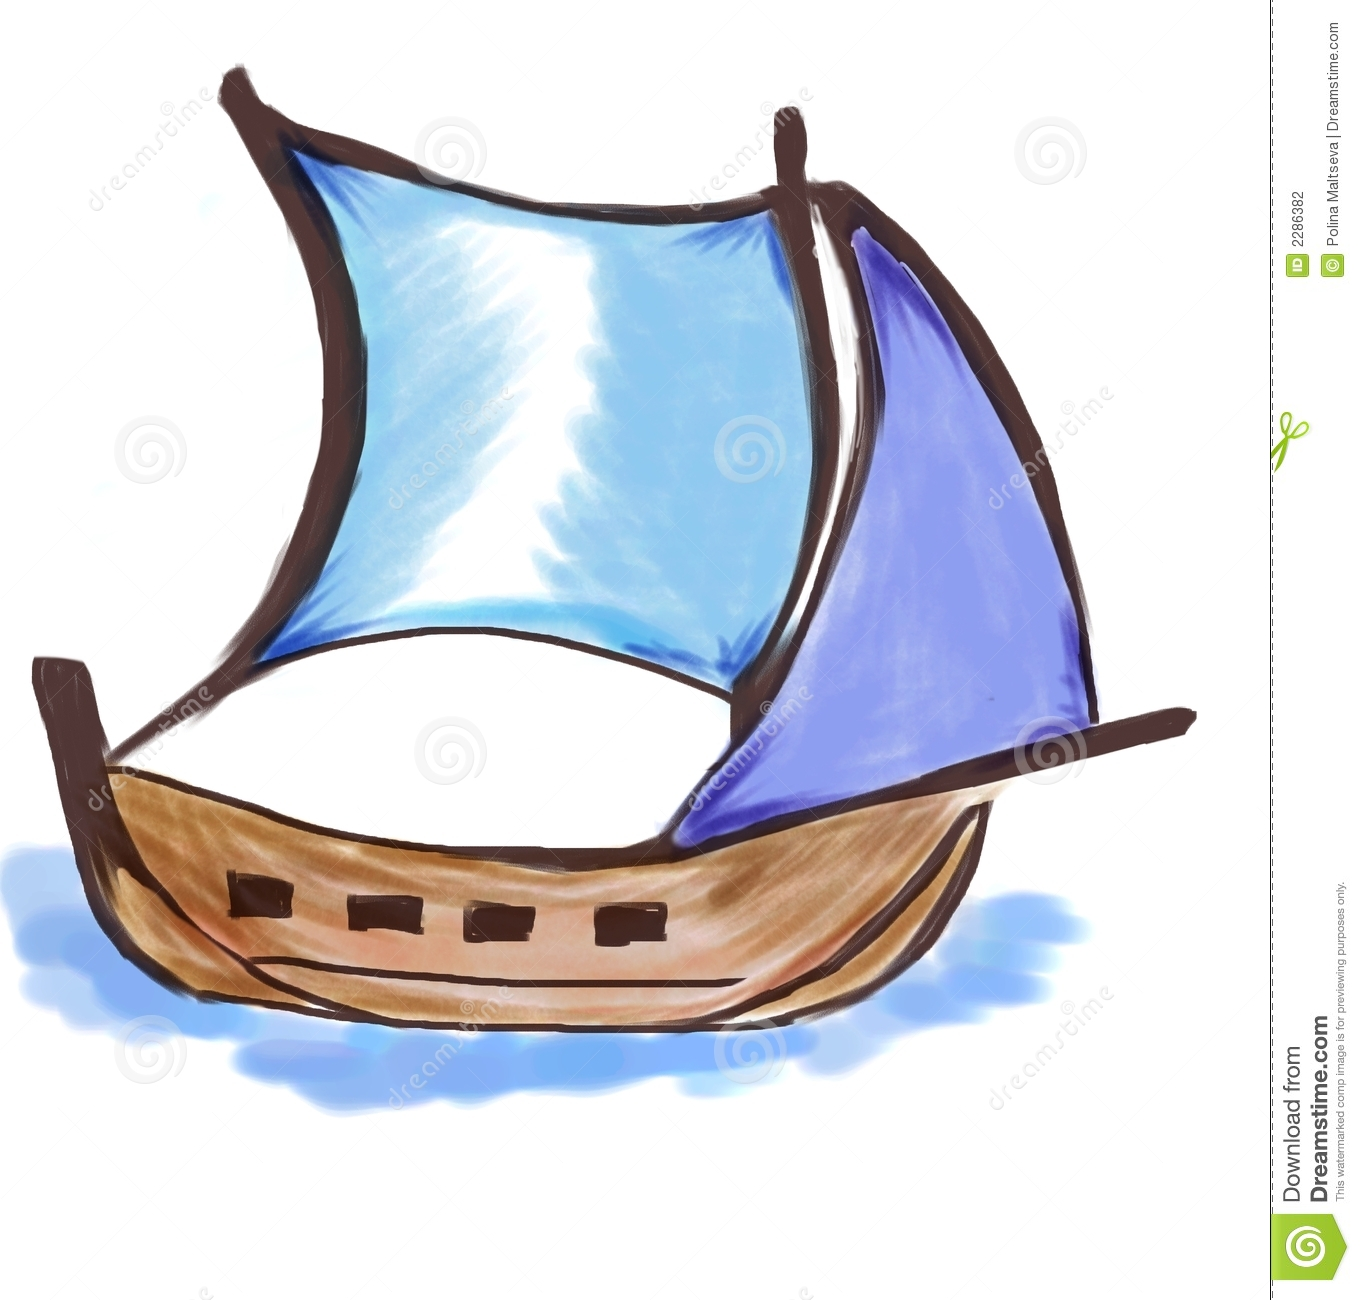 Small ship stock illustration. Illustration of outdoors - 2286382